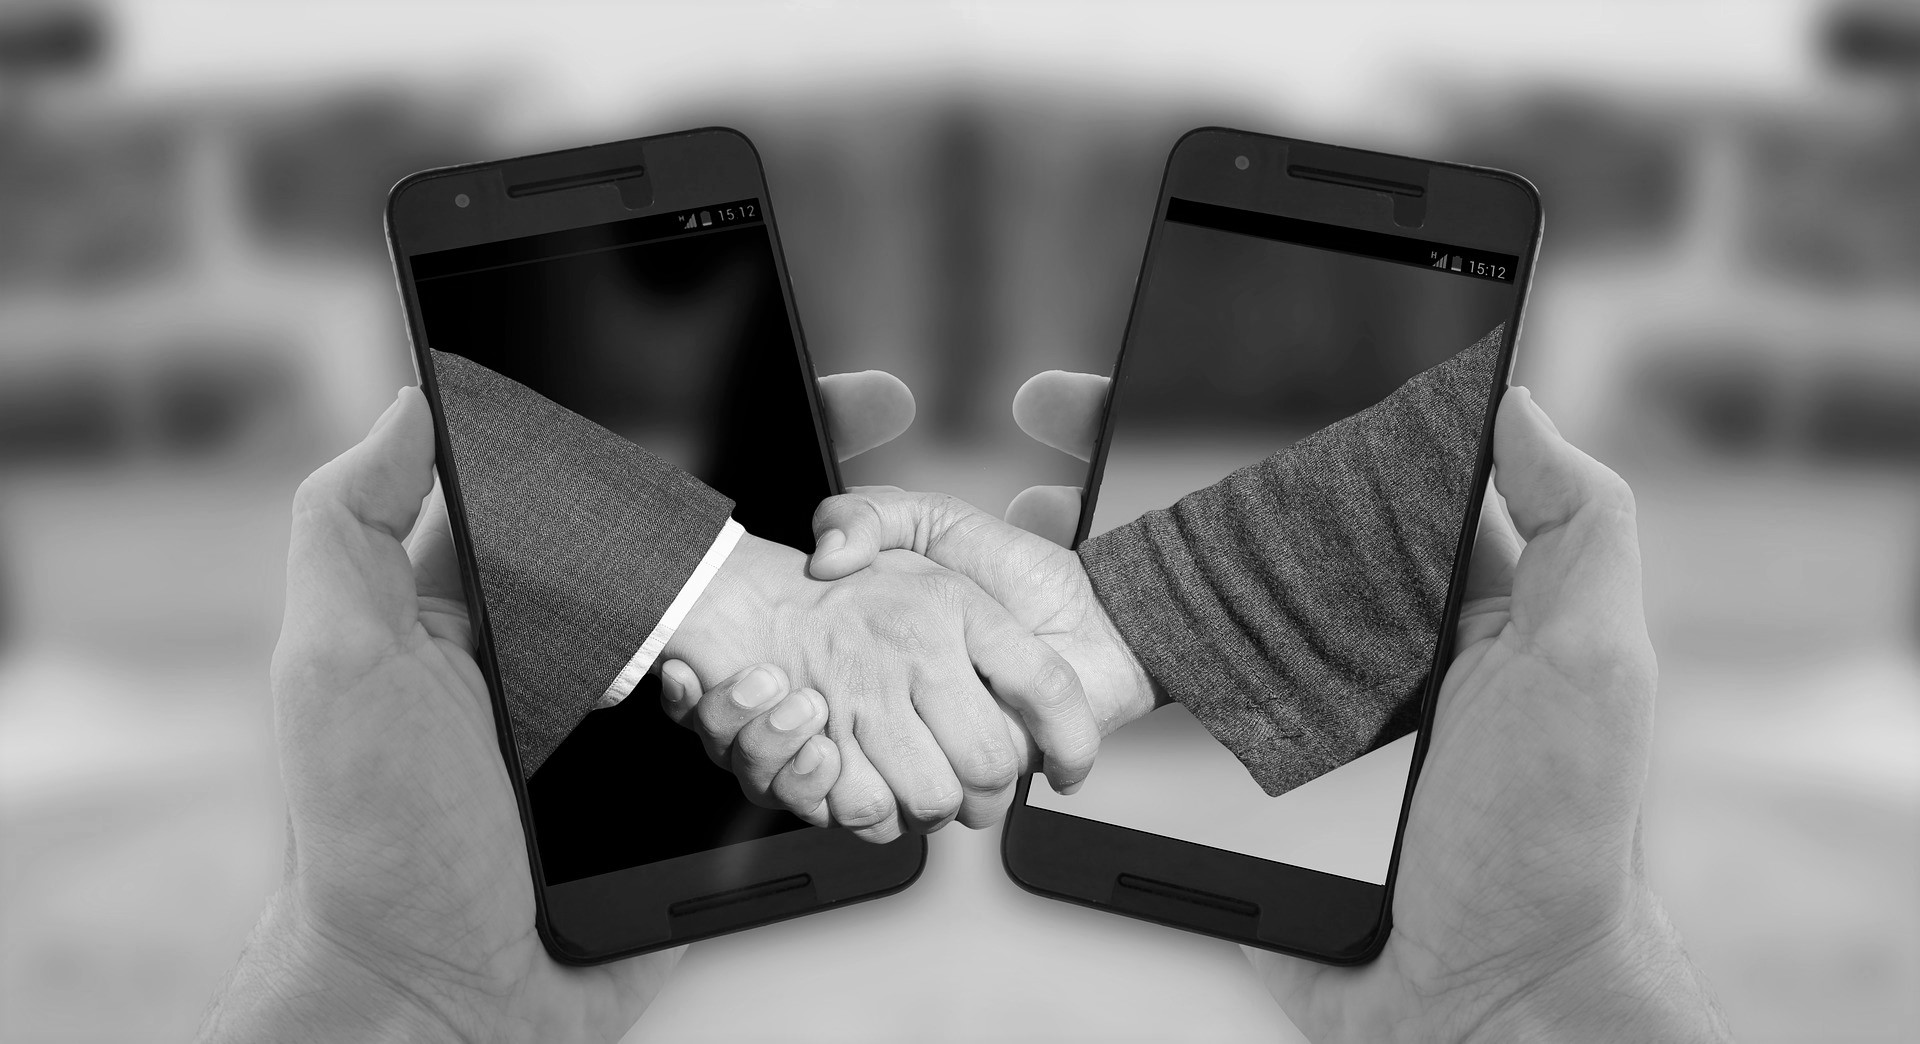 Shaking Hands through mobile phones